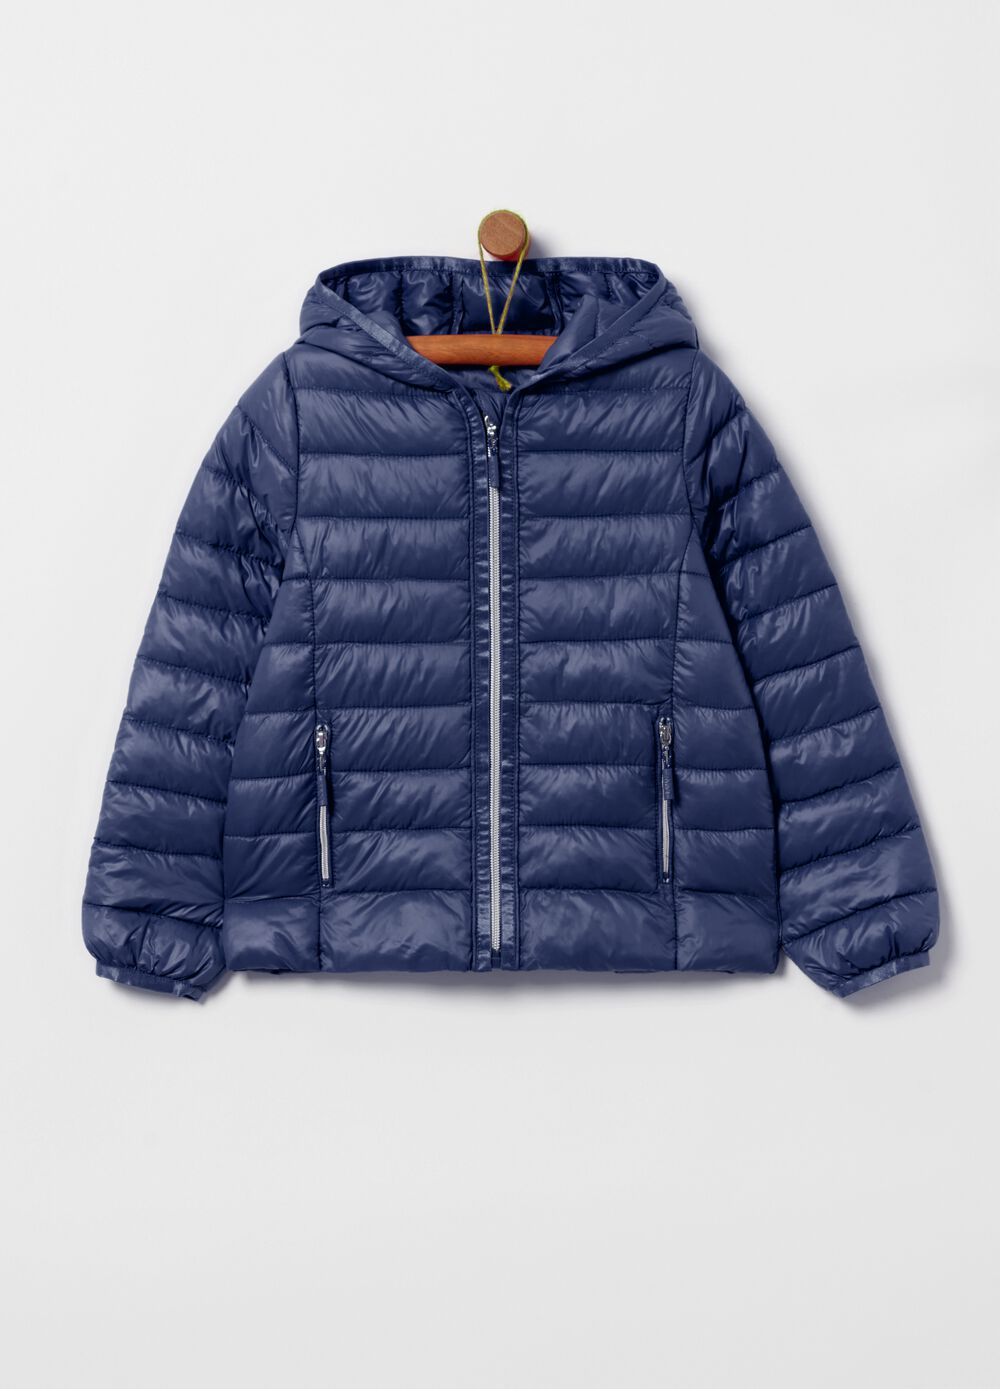 Ultra lightweight quilted jacket with zip